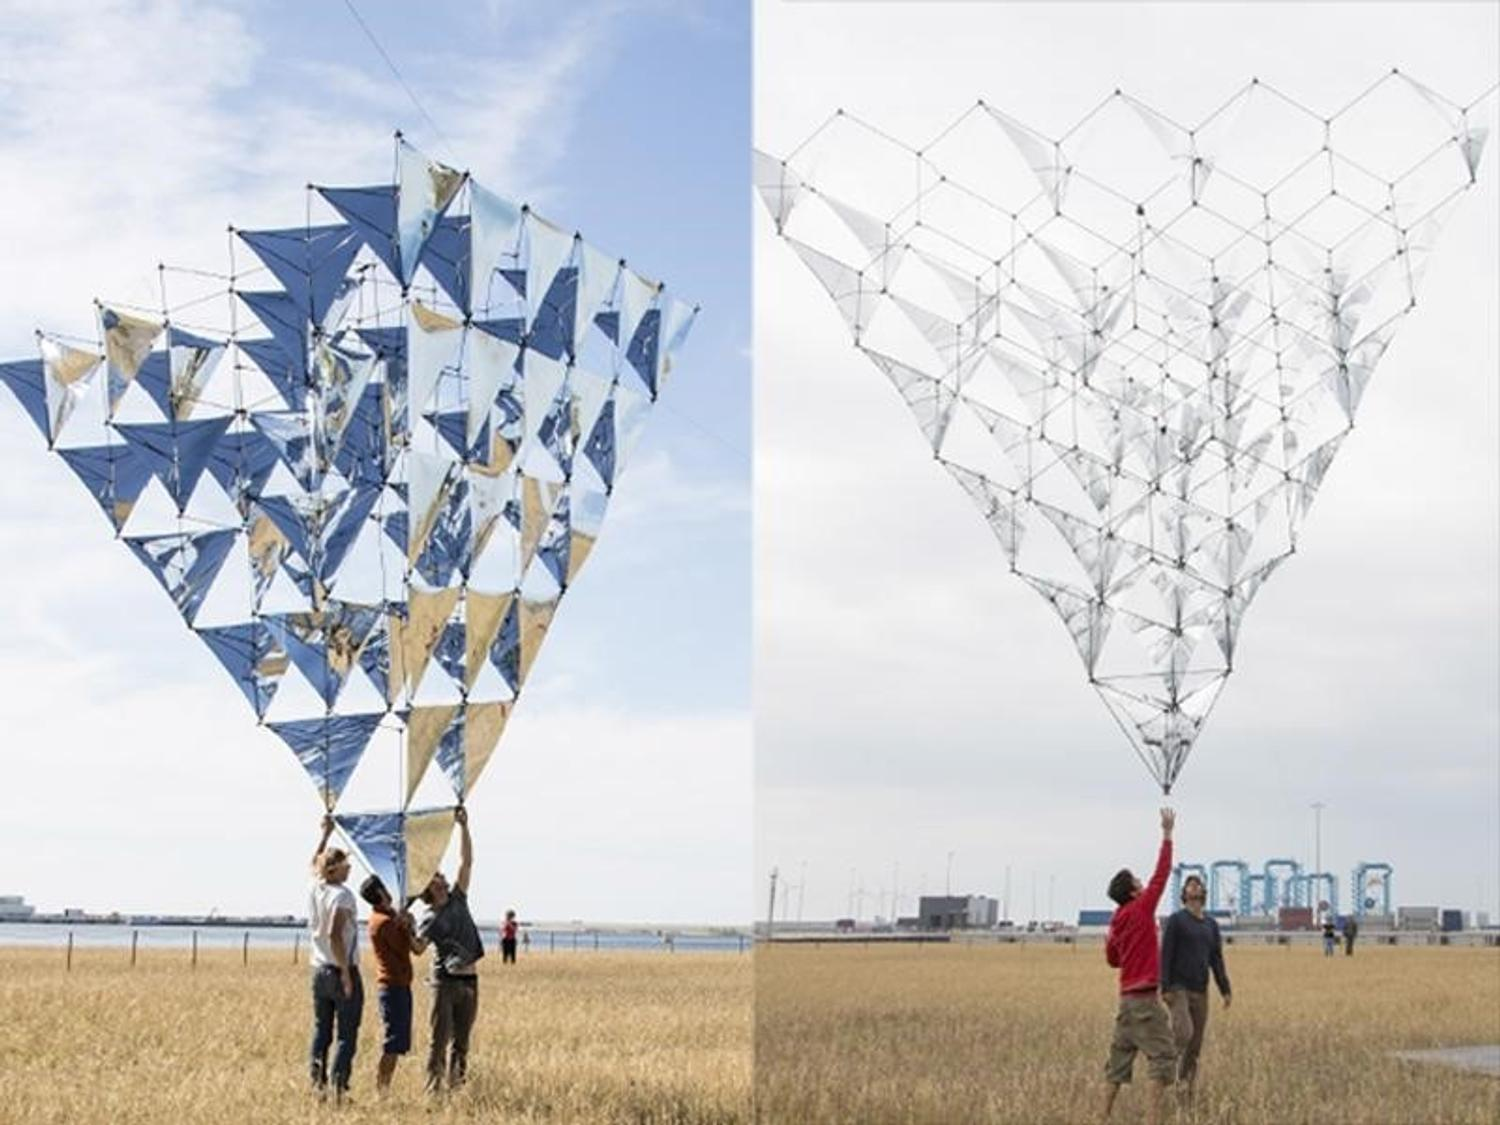 Tomás Saraceno Work Inspired By Alexander Graham Bell To Debut At Interesting In Orbit Tom%C3%A1s Saraceno